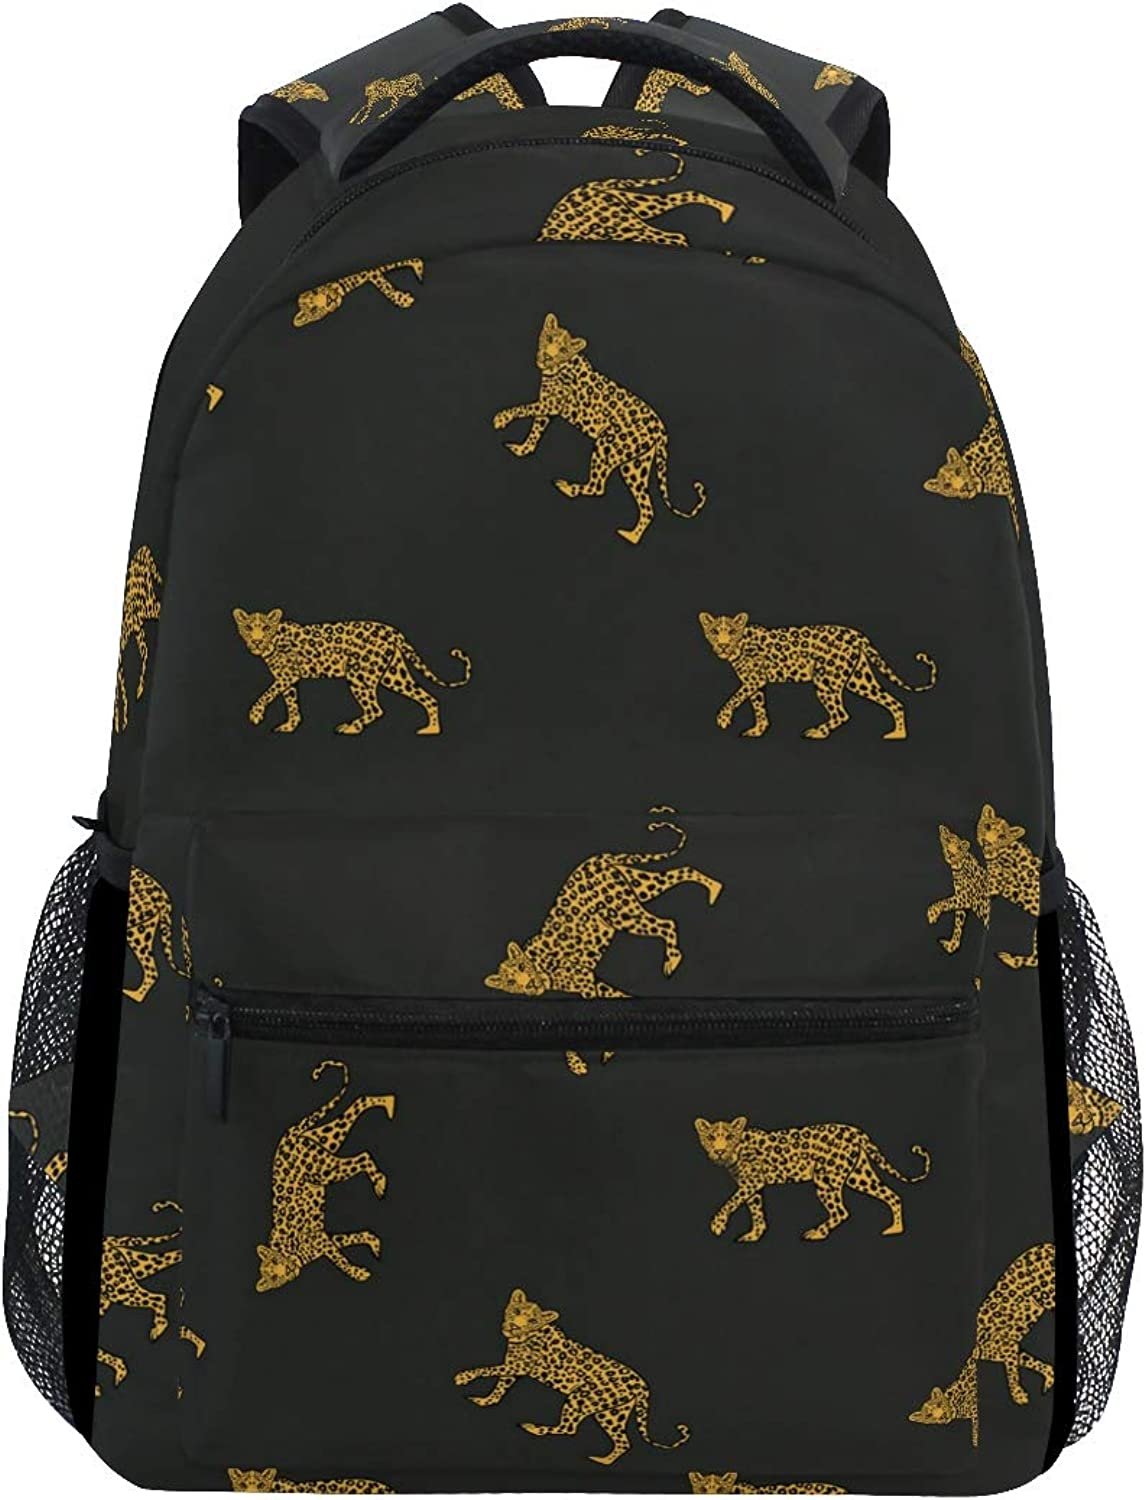 Leopard Covered in pink gold Large Backpack Travel Outdoor Sports Laptop Backpack for Women & Men College School Water Resistant